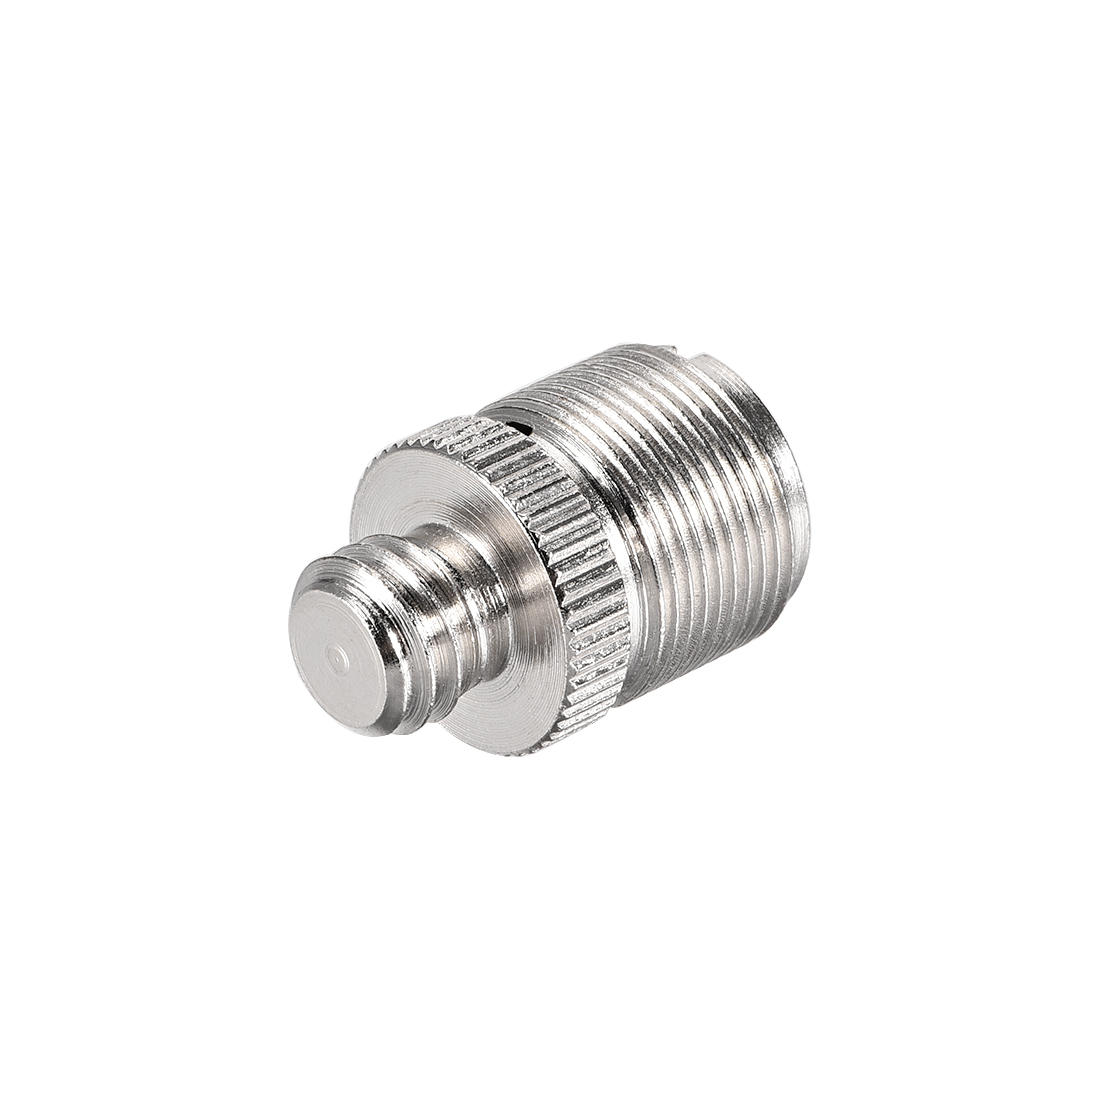 """3/8 Male To 5/8"""" Male Threaded Screw Adapter For Microphone Tripod Stand 1pcs"""